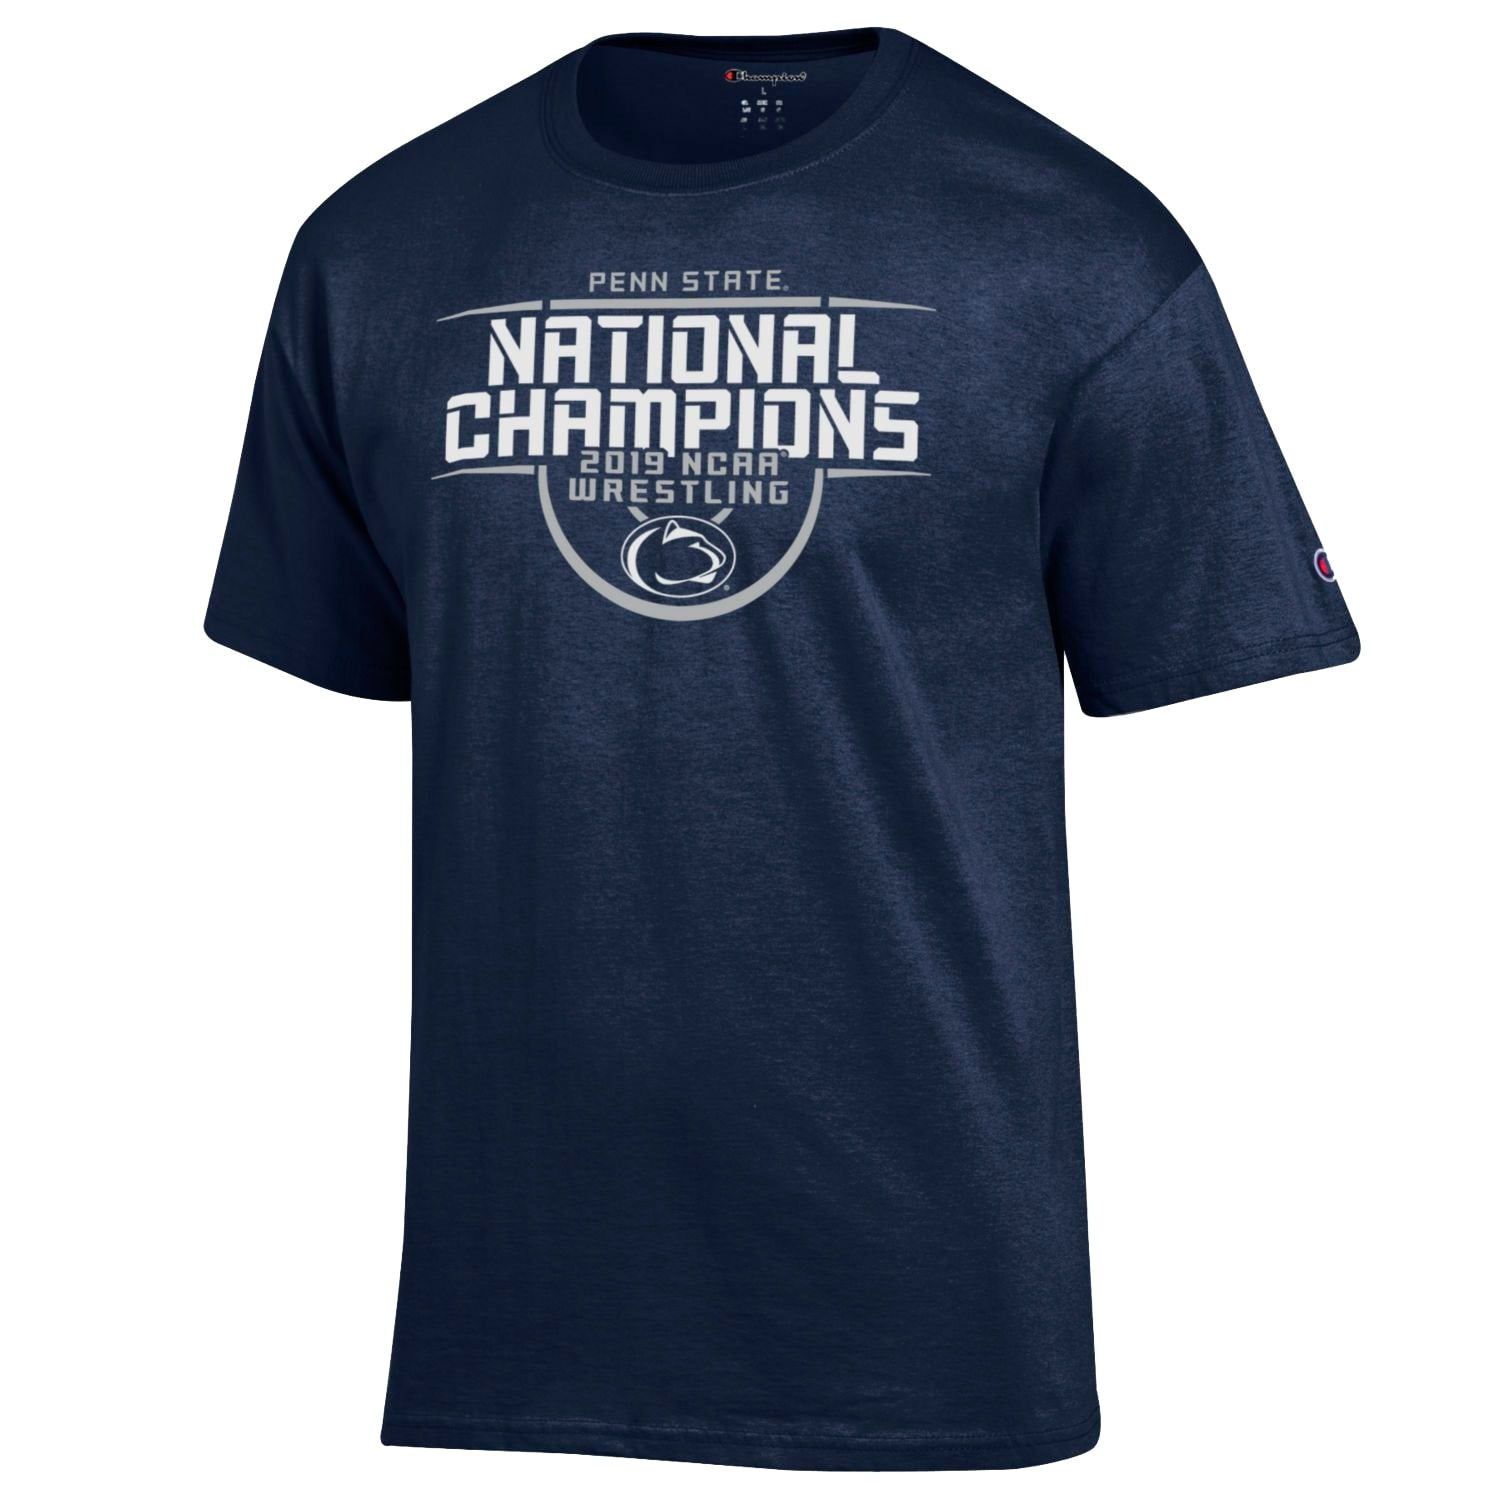 2019 Penn State NCAA Wrestling National Champion Shirt